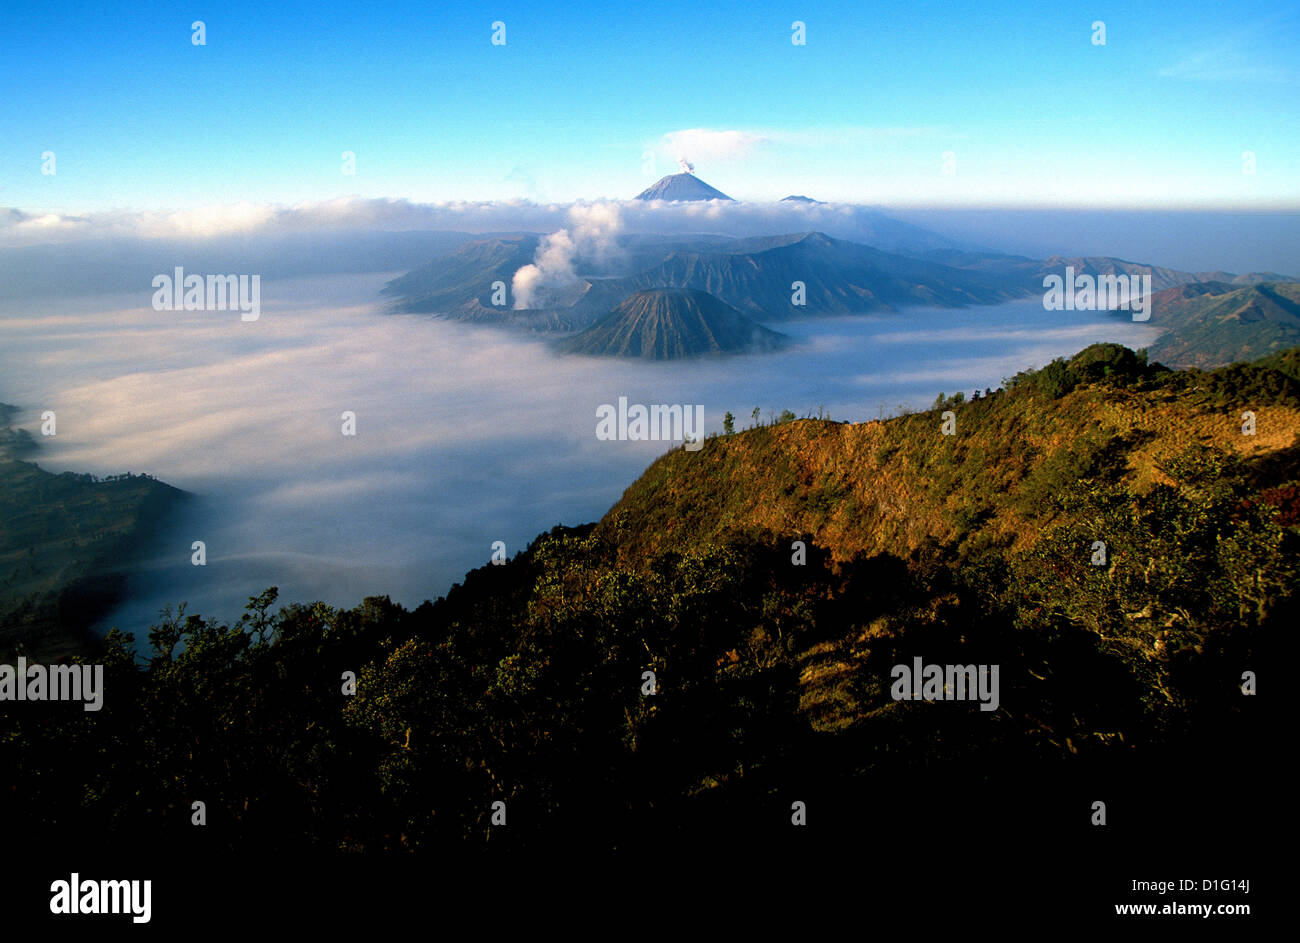 Caldeira and Bromo, 2329 m, and Semeru, 3676 m, two volcanoes on Java, Indonesia, Southeast Asia, Asia - Stock Image